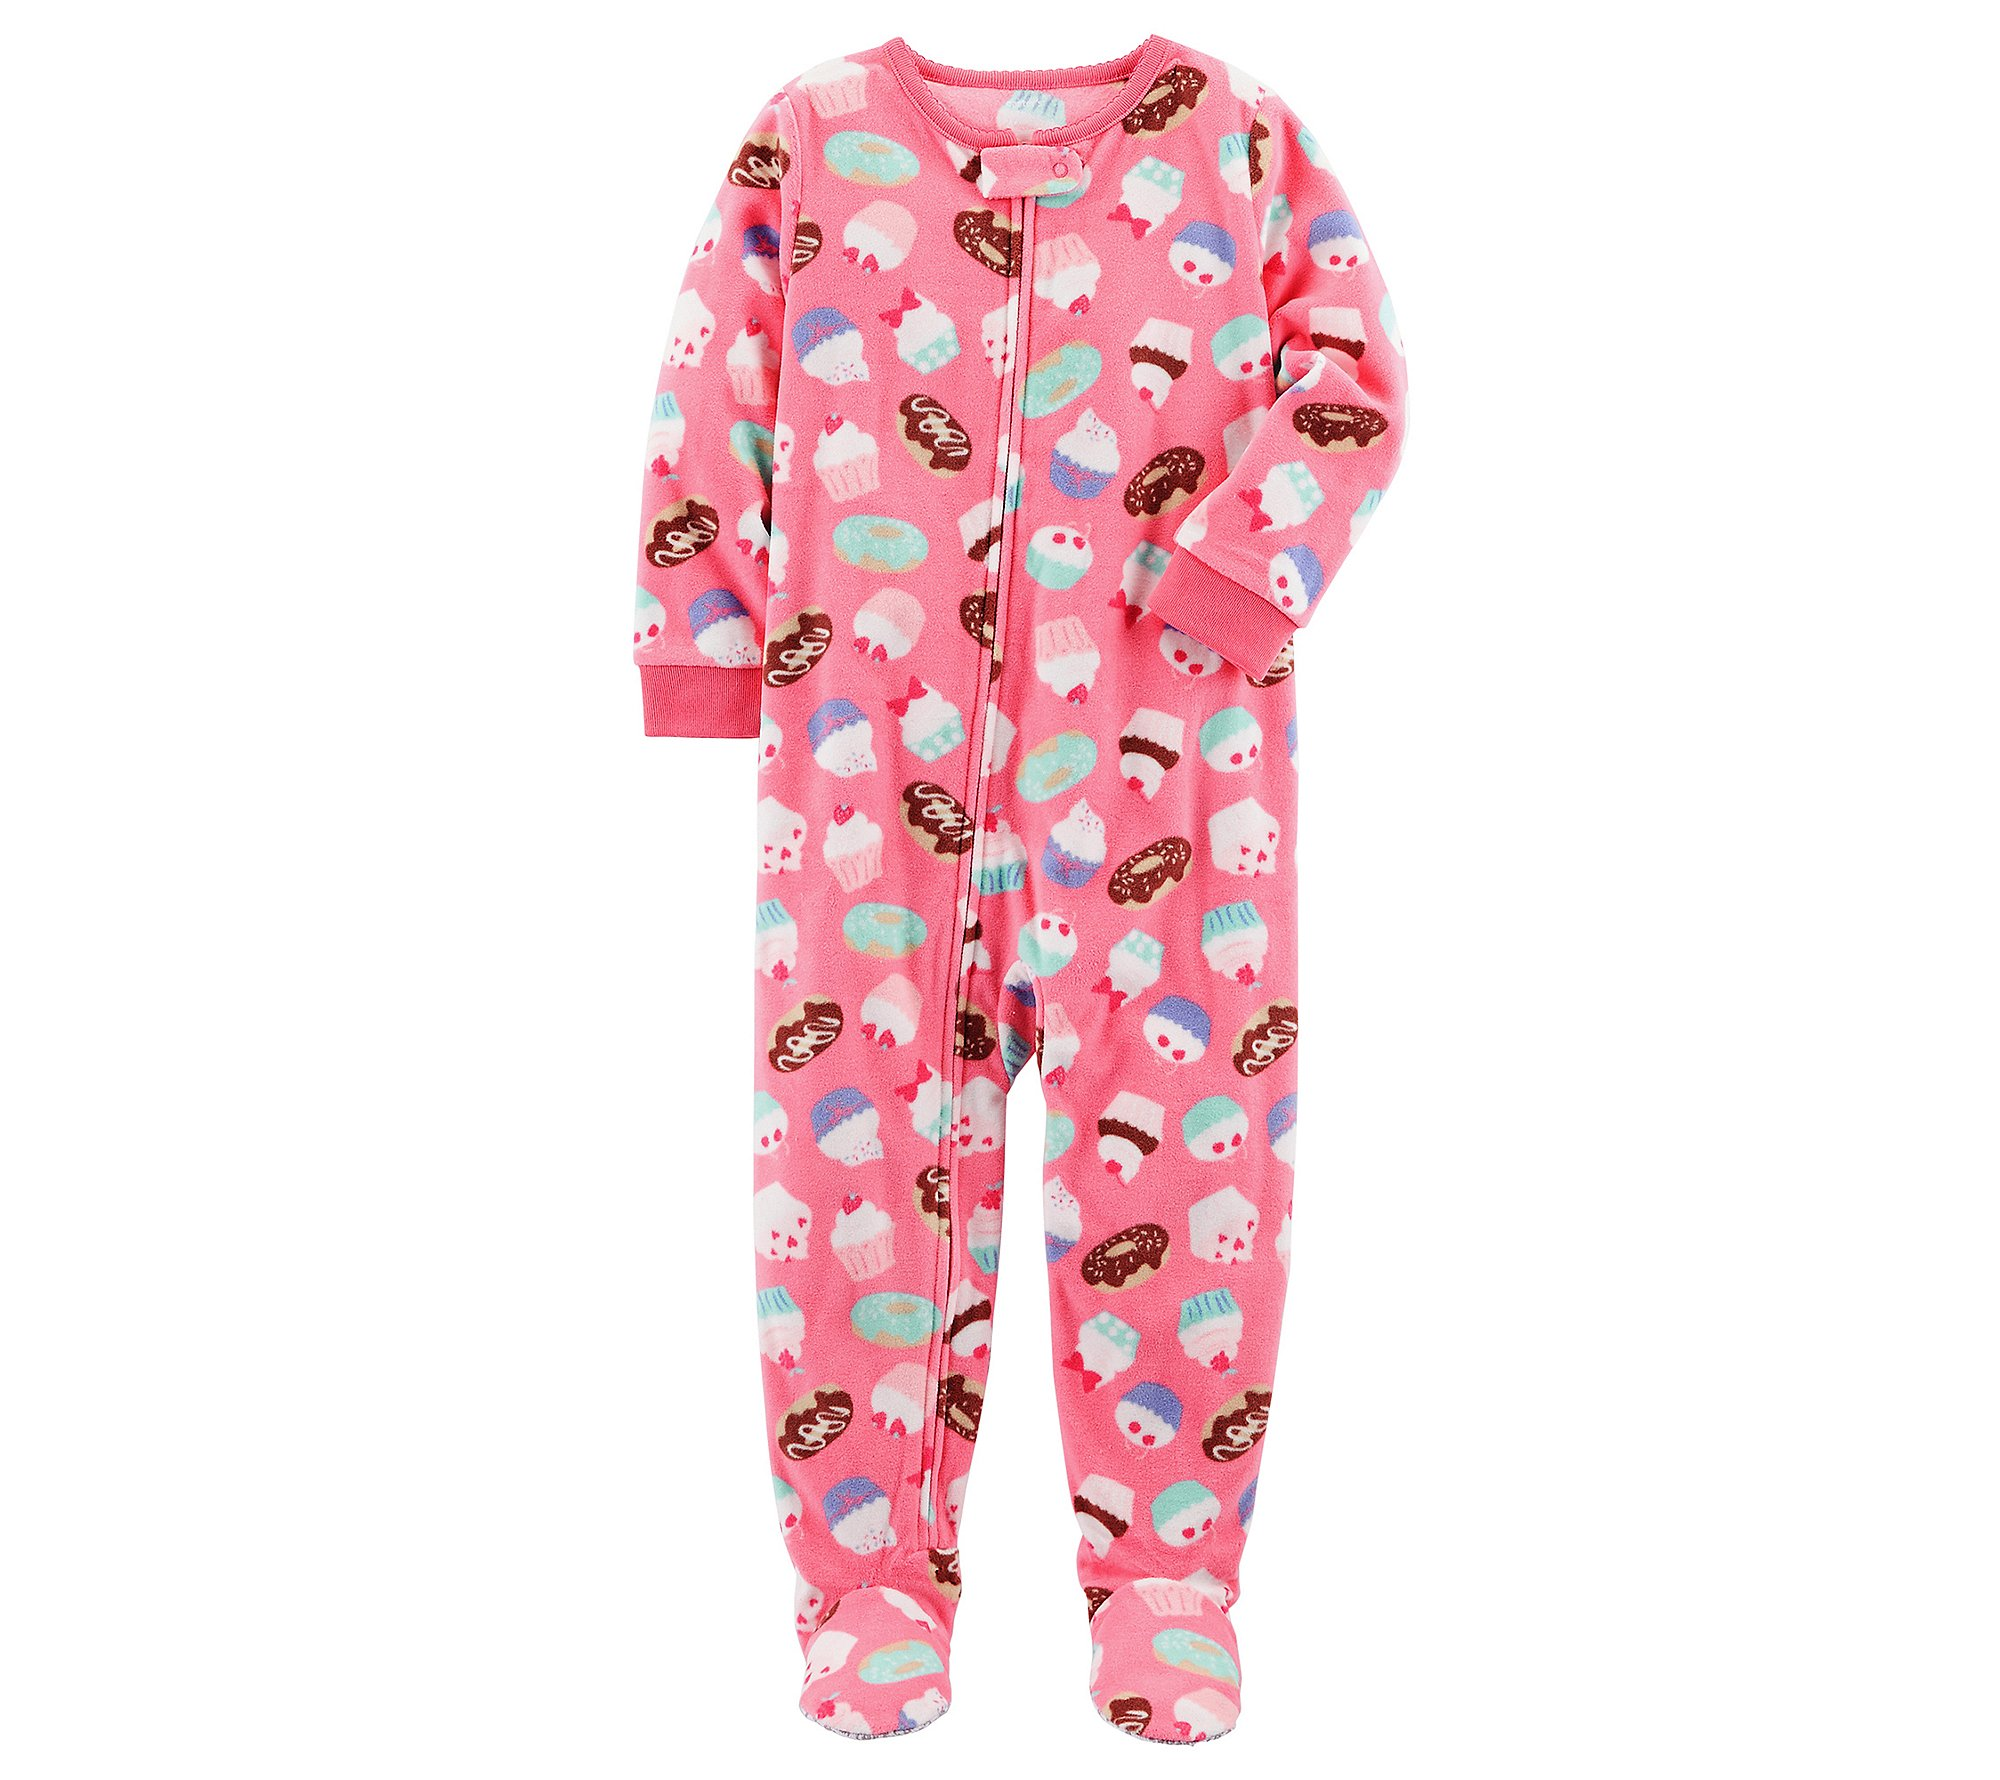 sleepers size long frogs items piece sleeper lot baby girl of img products one newborn sleeve